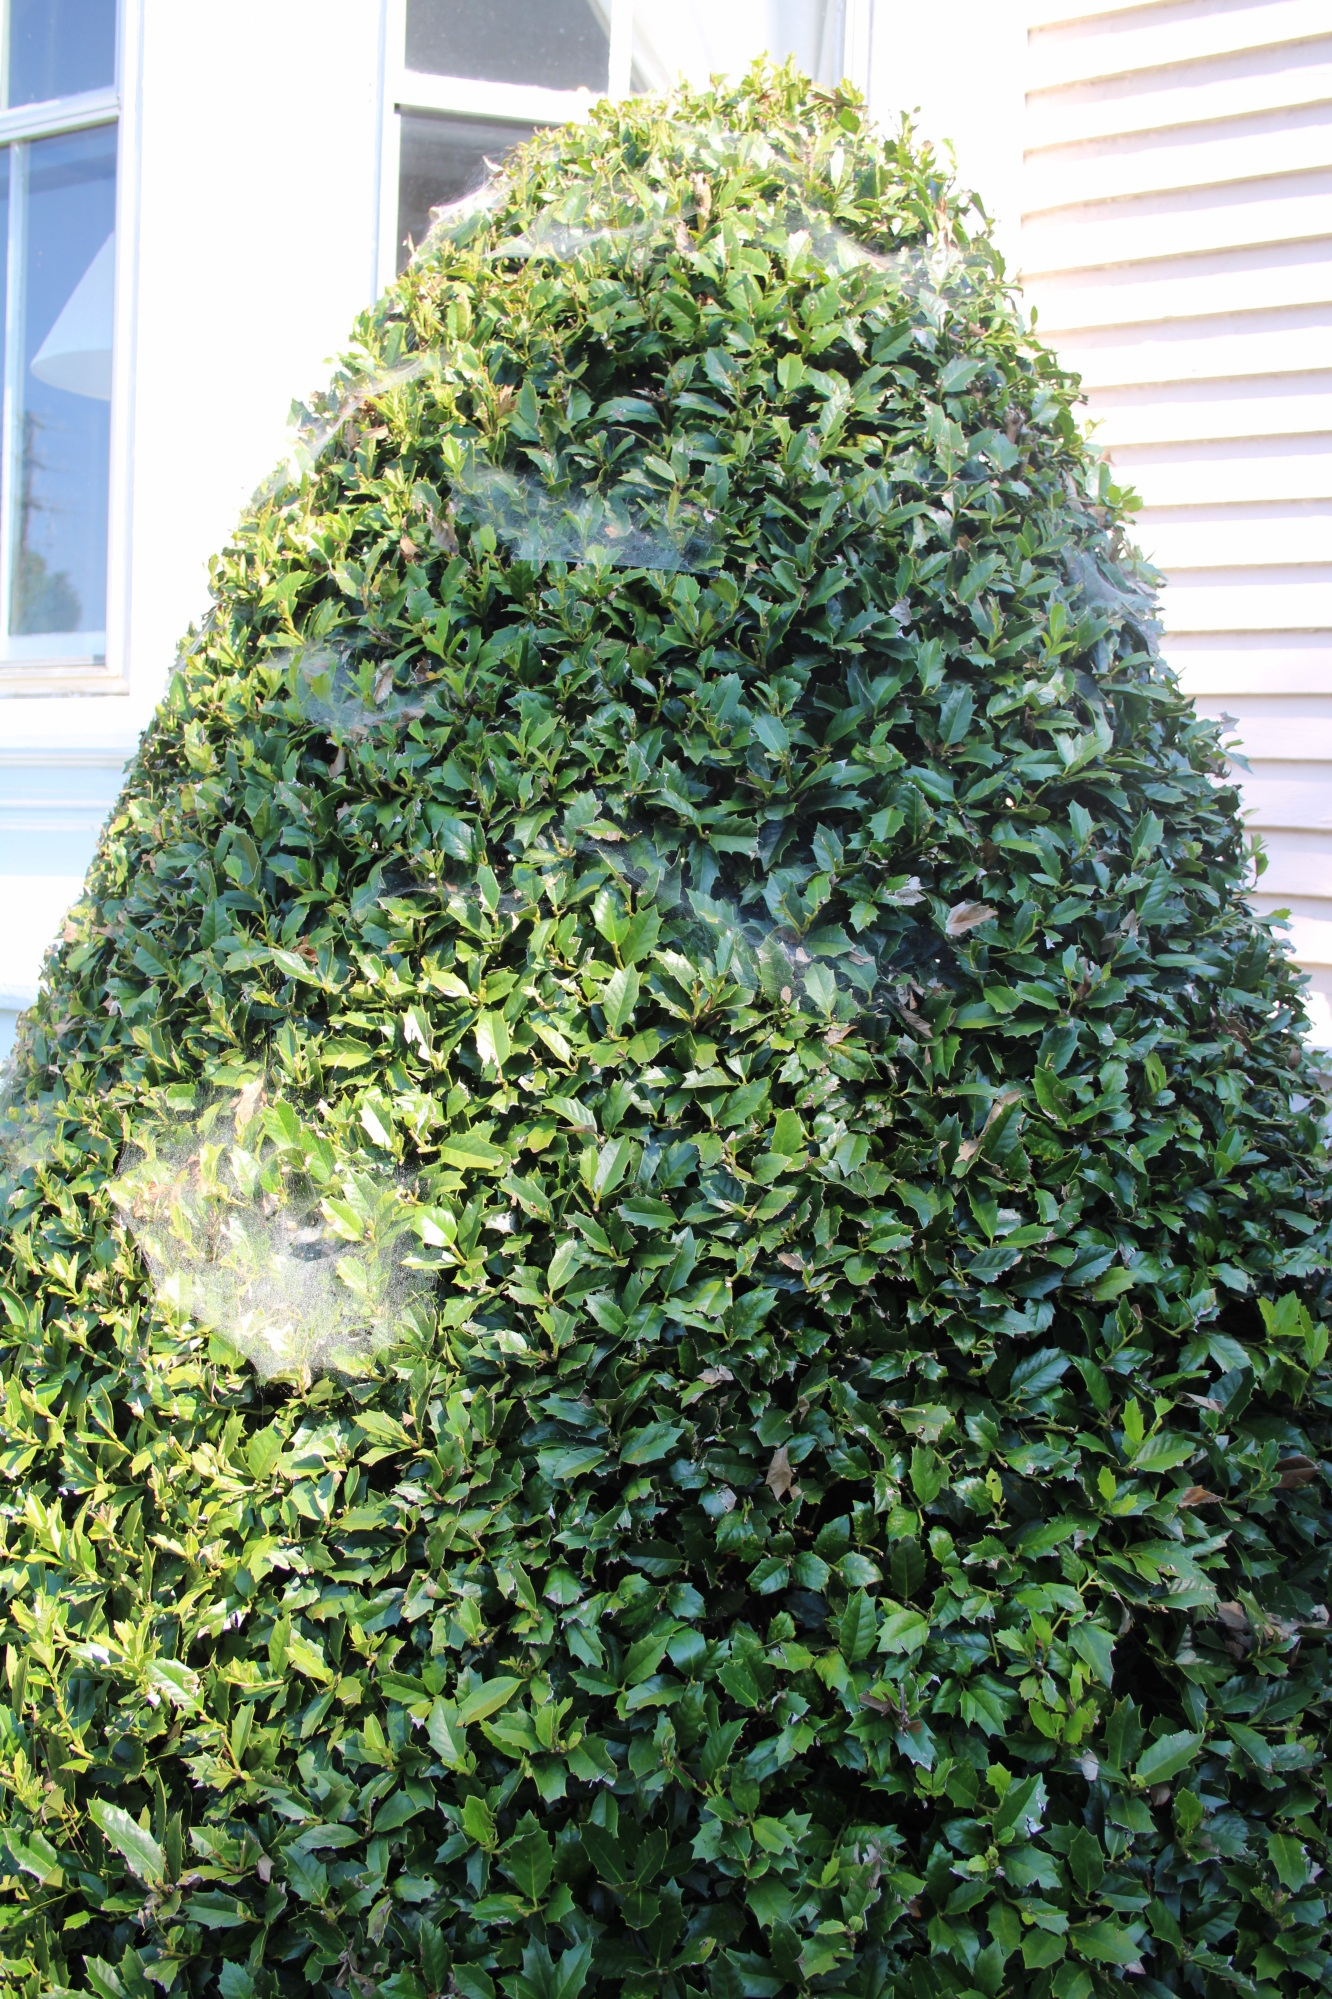 Spider mites on Holly ( Ilex)  are most obvious in the morning, before sun dries the dew clinging to the webs.